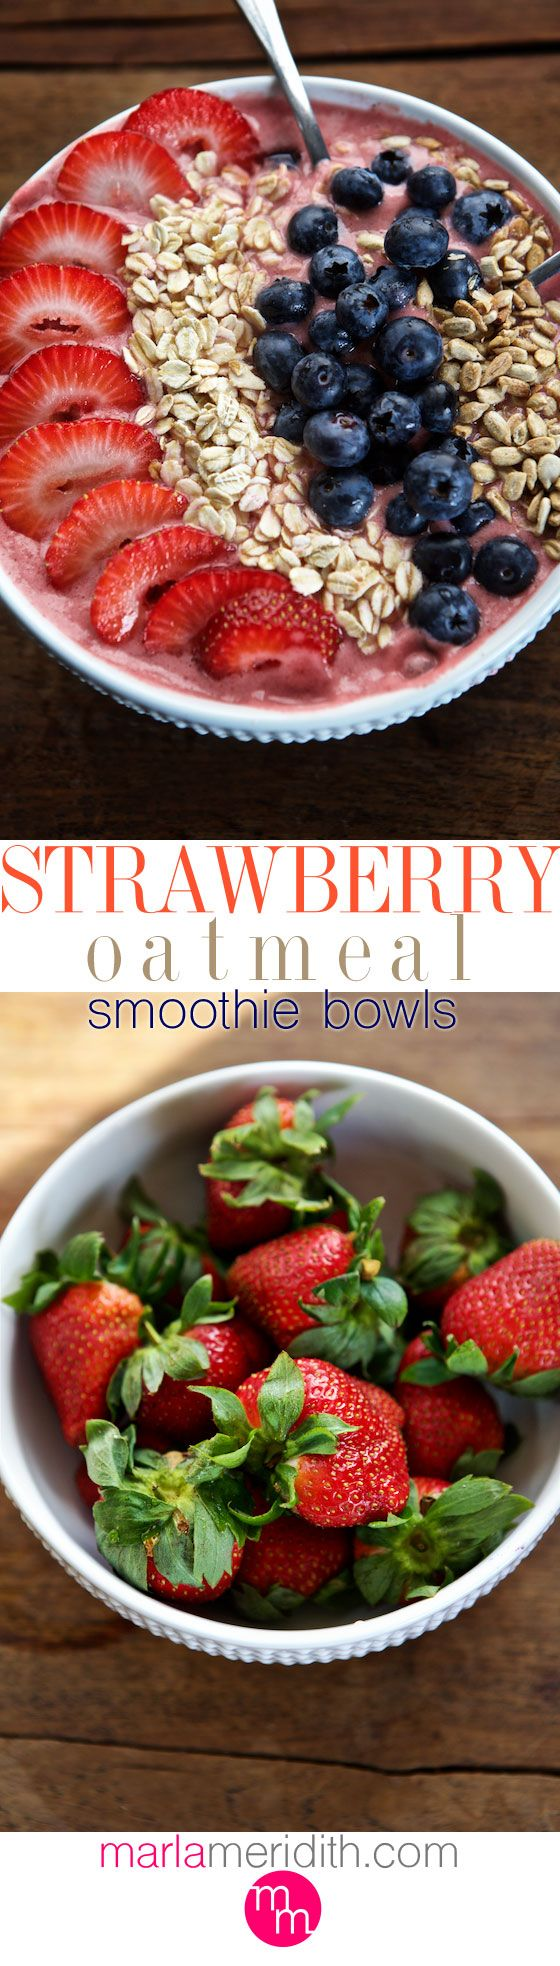 Strawberry Oatmeal Smoothie Bowl | Eat your smoothie with a spoon! MarlaMeridith.com ( @ marlameridith ) #vegan